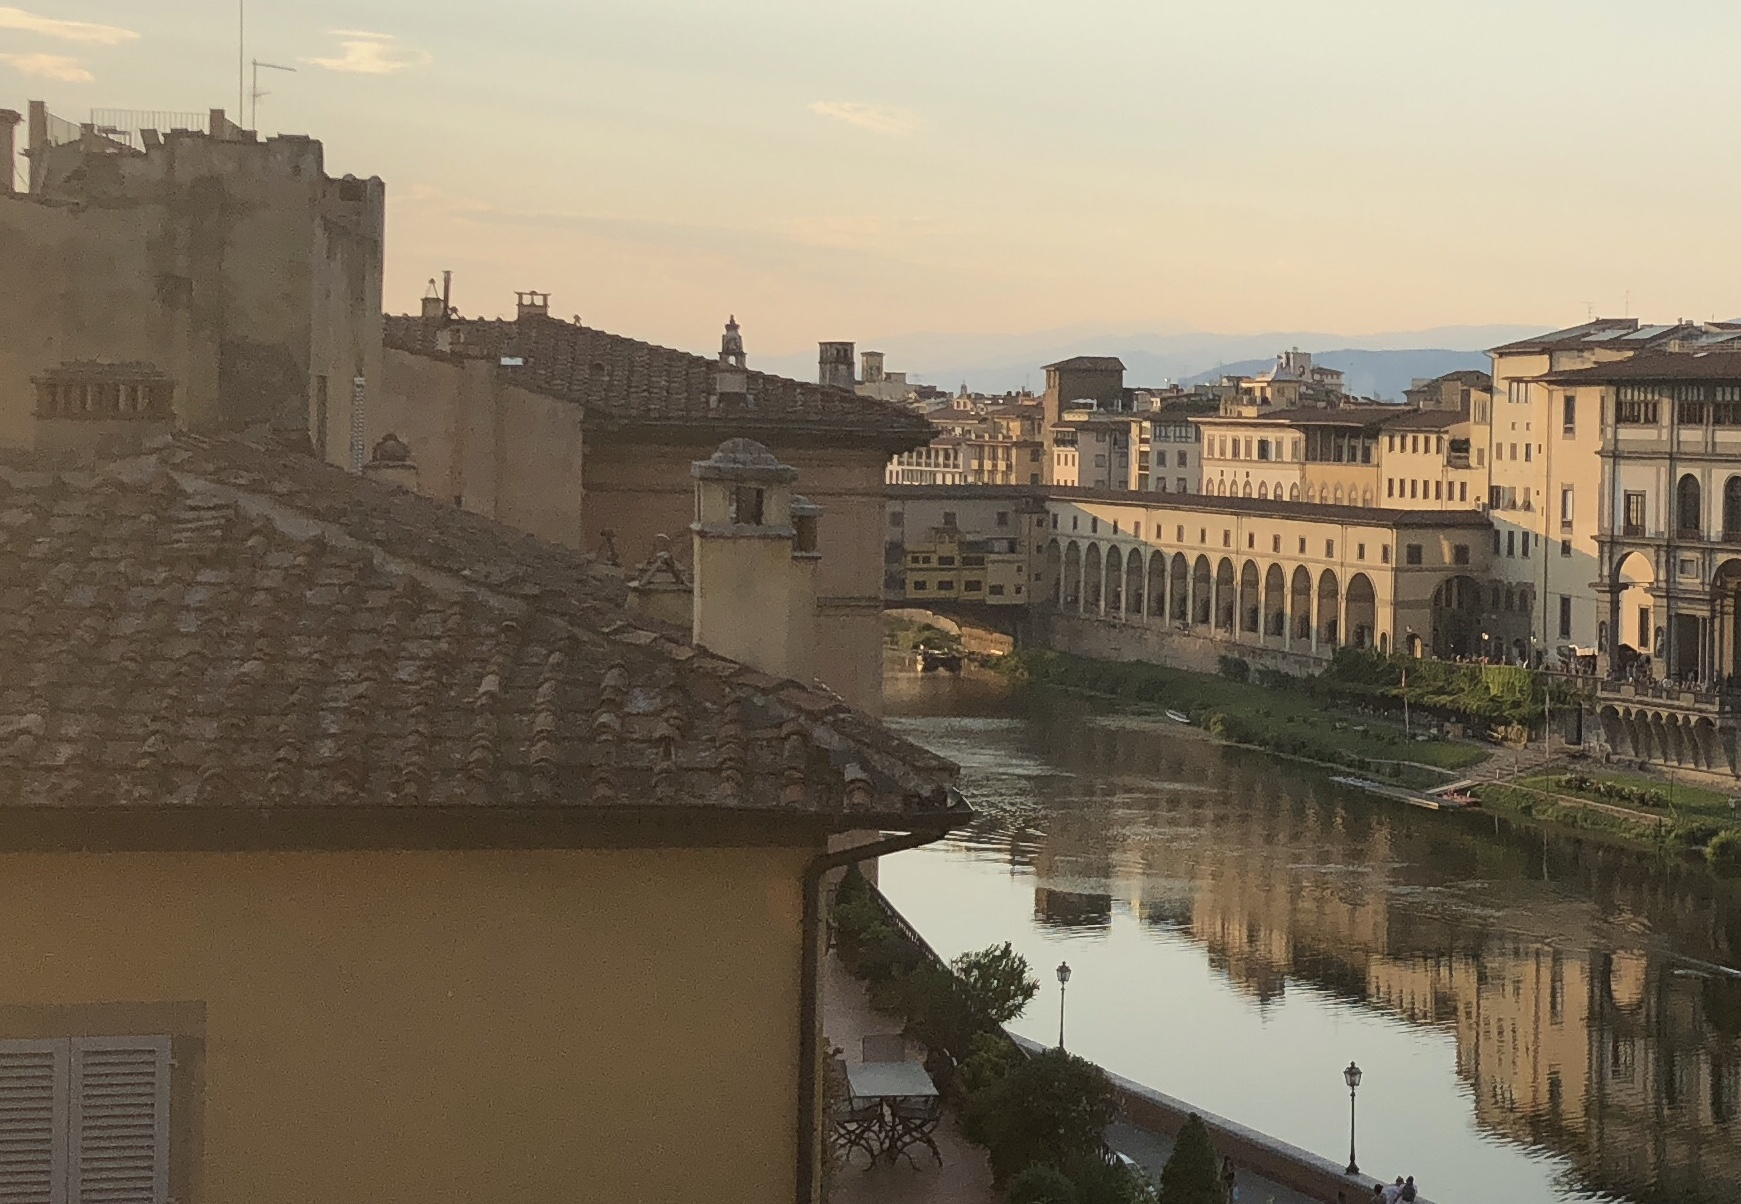 A View of Florence and the Arno River.